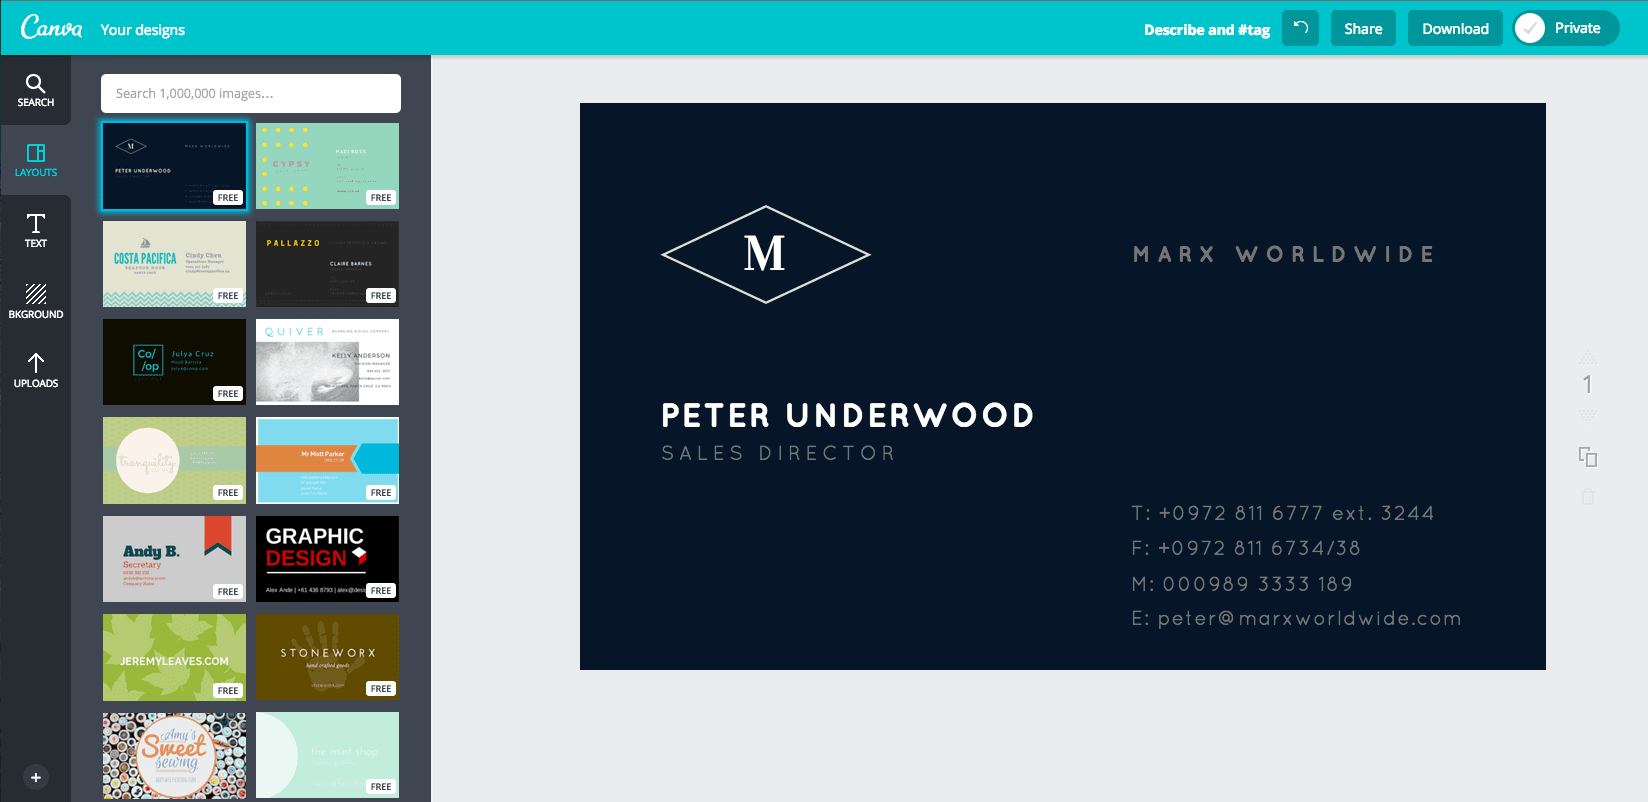 Create a business card in Canva